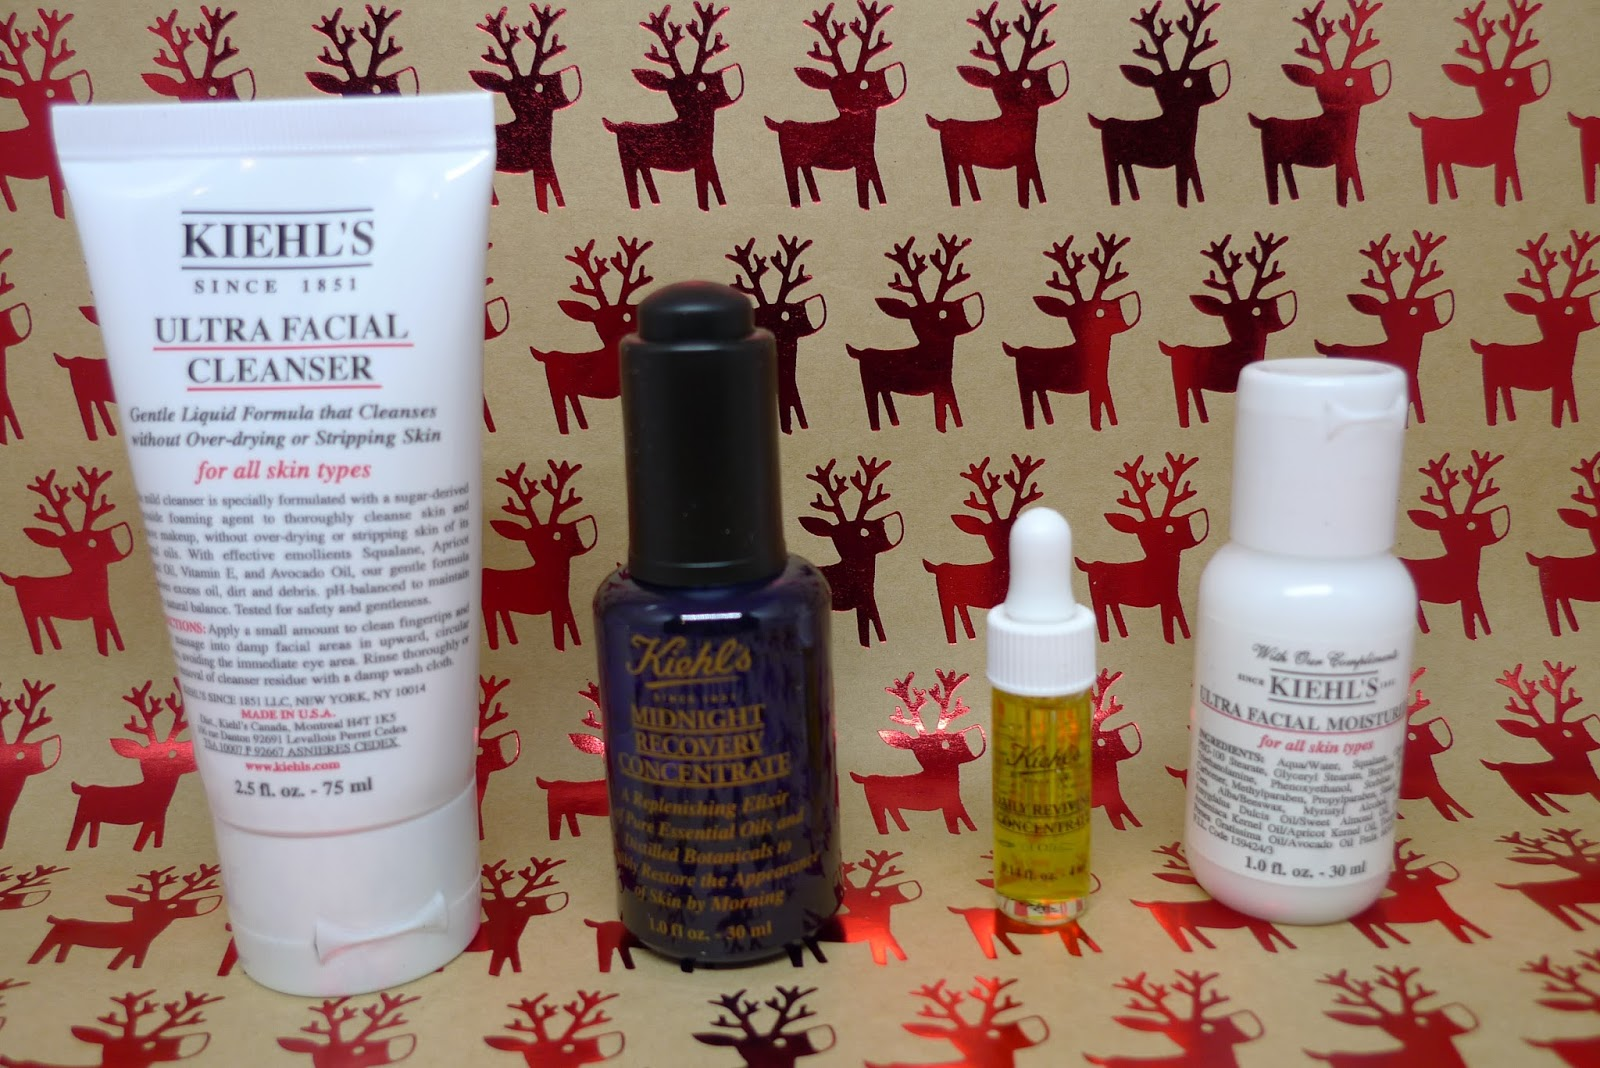 Canada Goose langford parka online discounts - I am a weapon of massive consumption: Xmas 2015 / Kiehl's Holiday ...